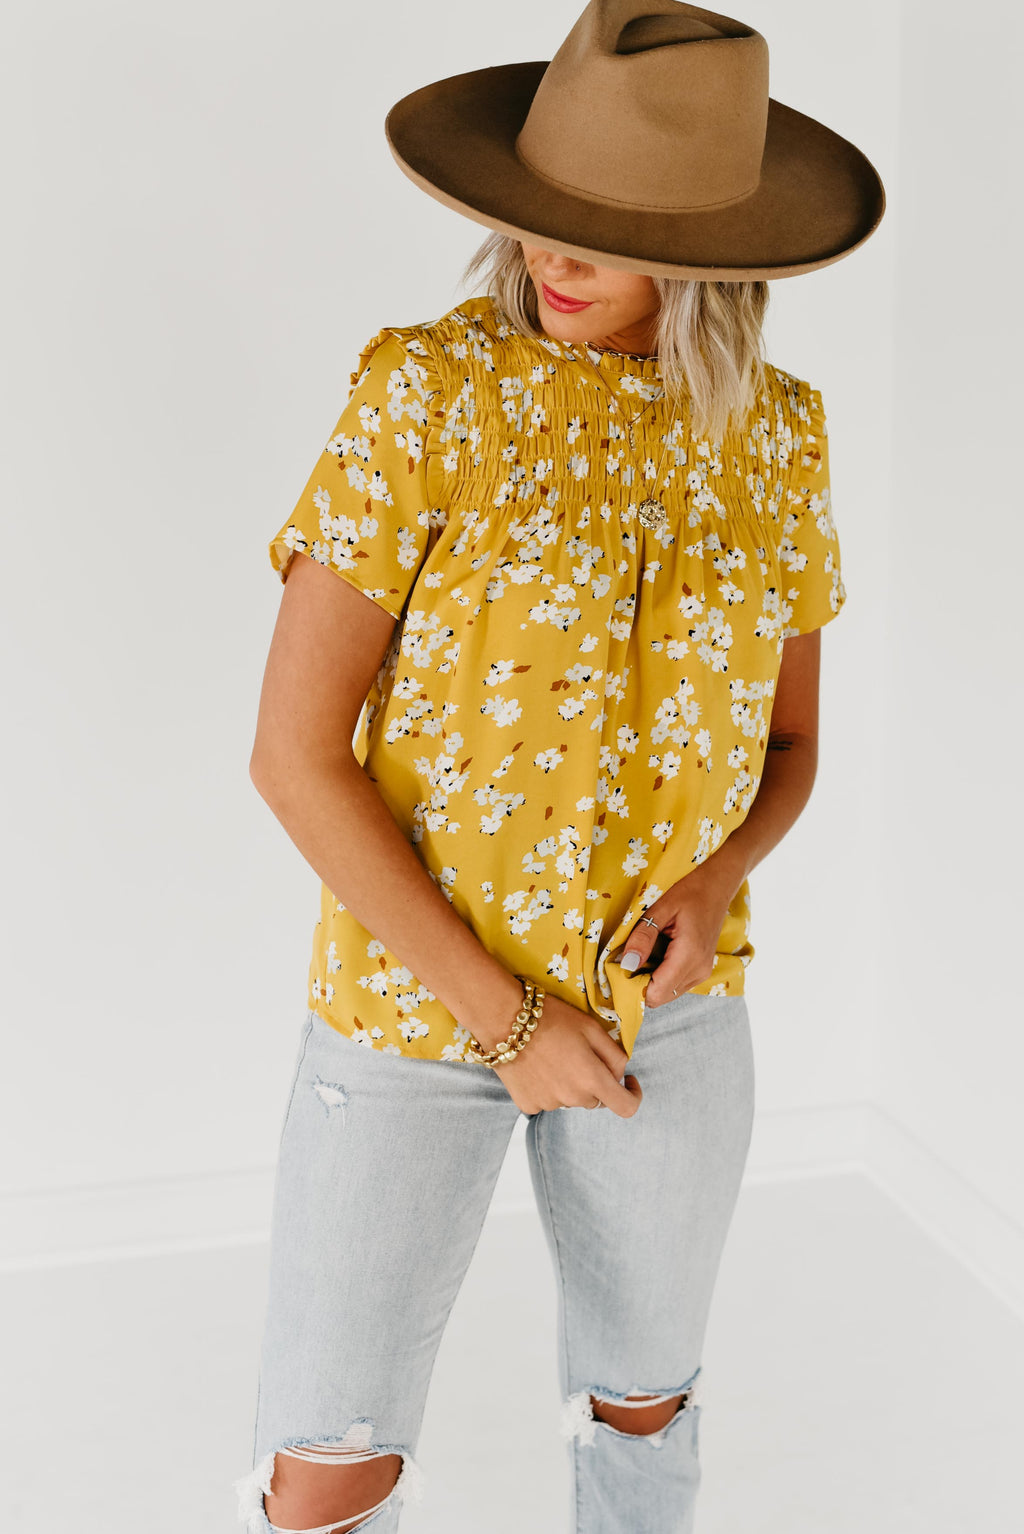 (MOD Exclusive) The Maxwell Smock Yoke Top - Mustard